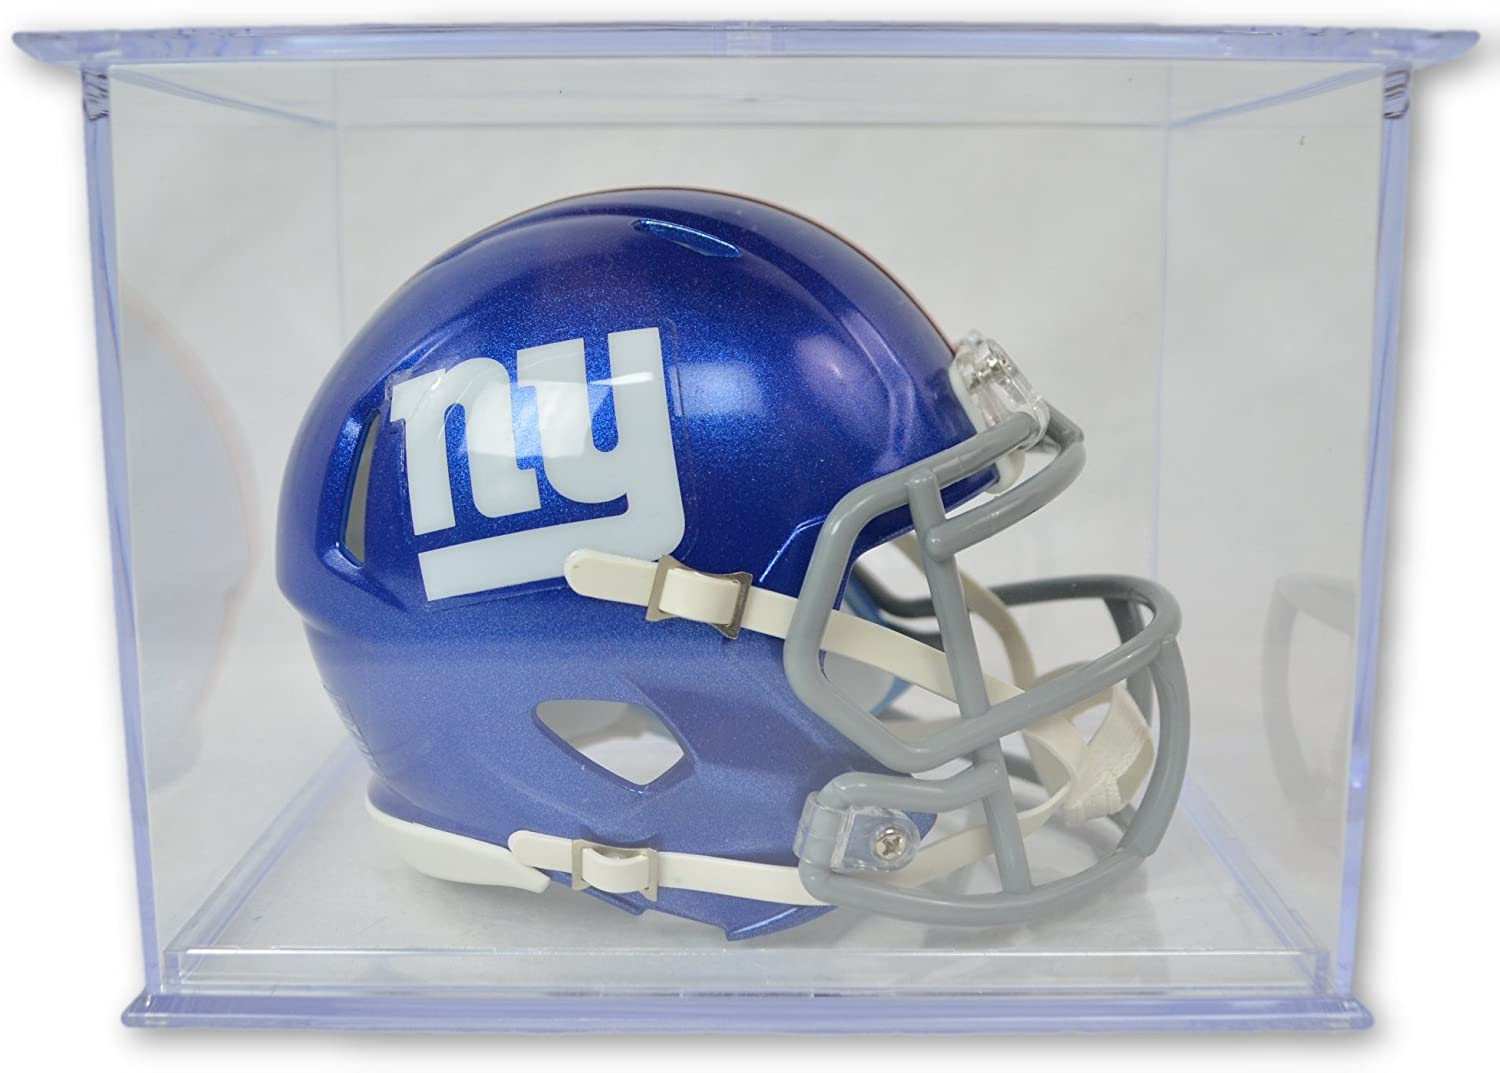 Great Sports Fan Collectible Riddell Official National Football League Fan Shop Authentic NFL Mini Speed Helmet and Display Case Bundle Office Home or Man Cave